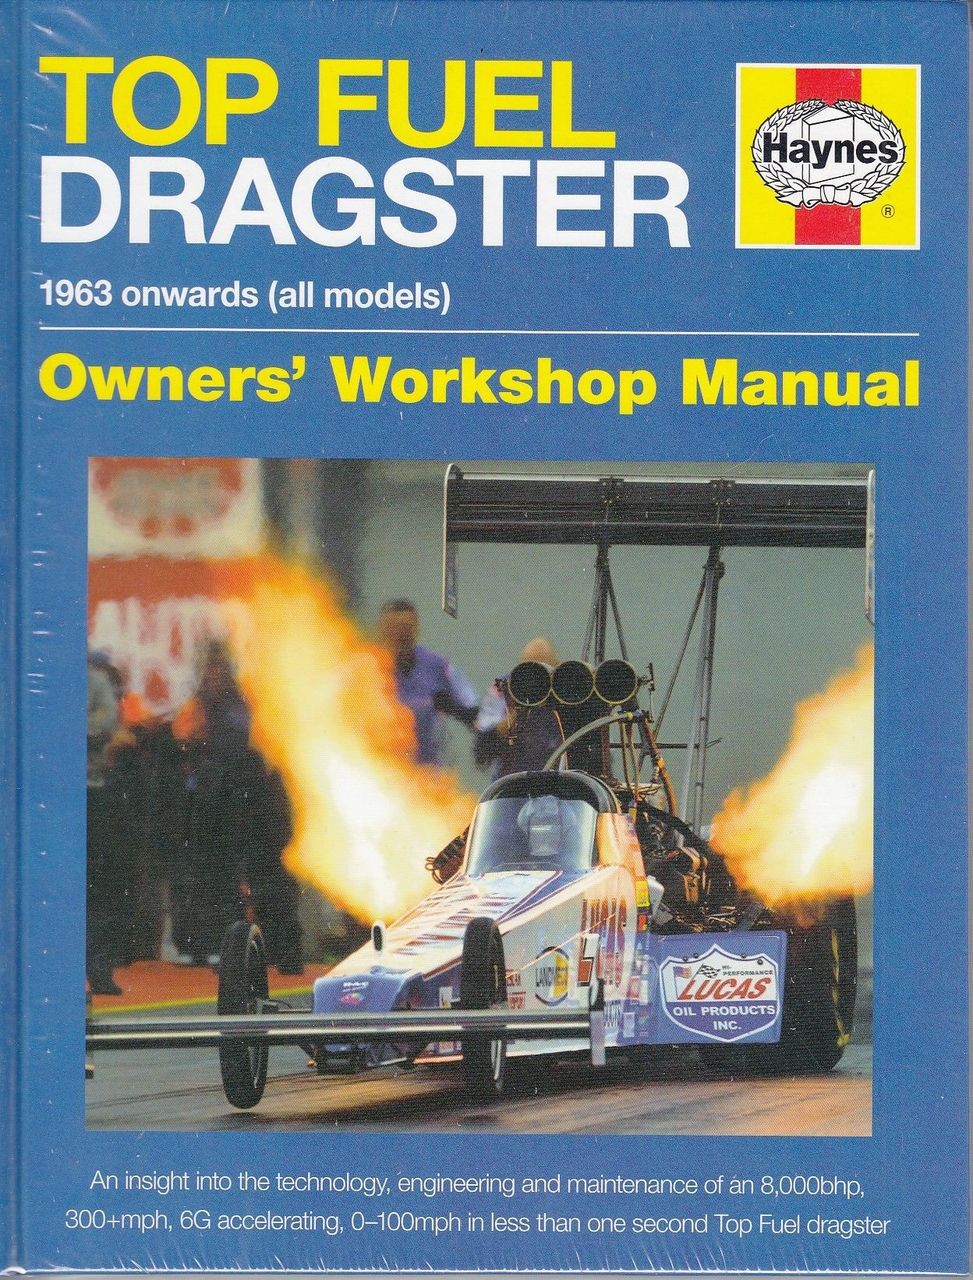 Top Fuel Dragster 1963 Onwards Owners\' Workshop Manual